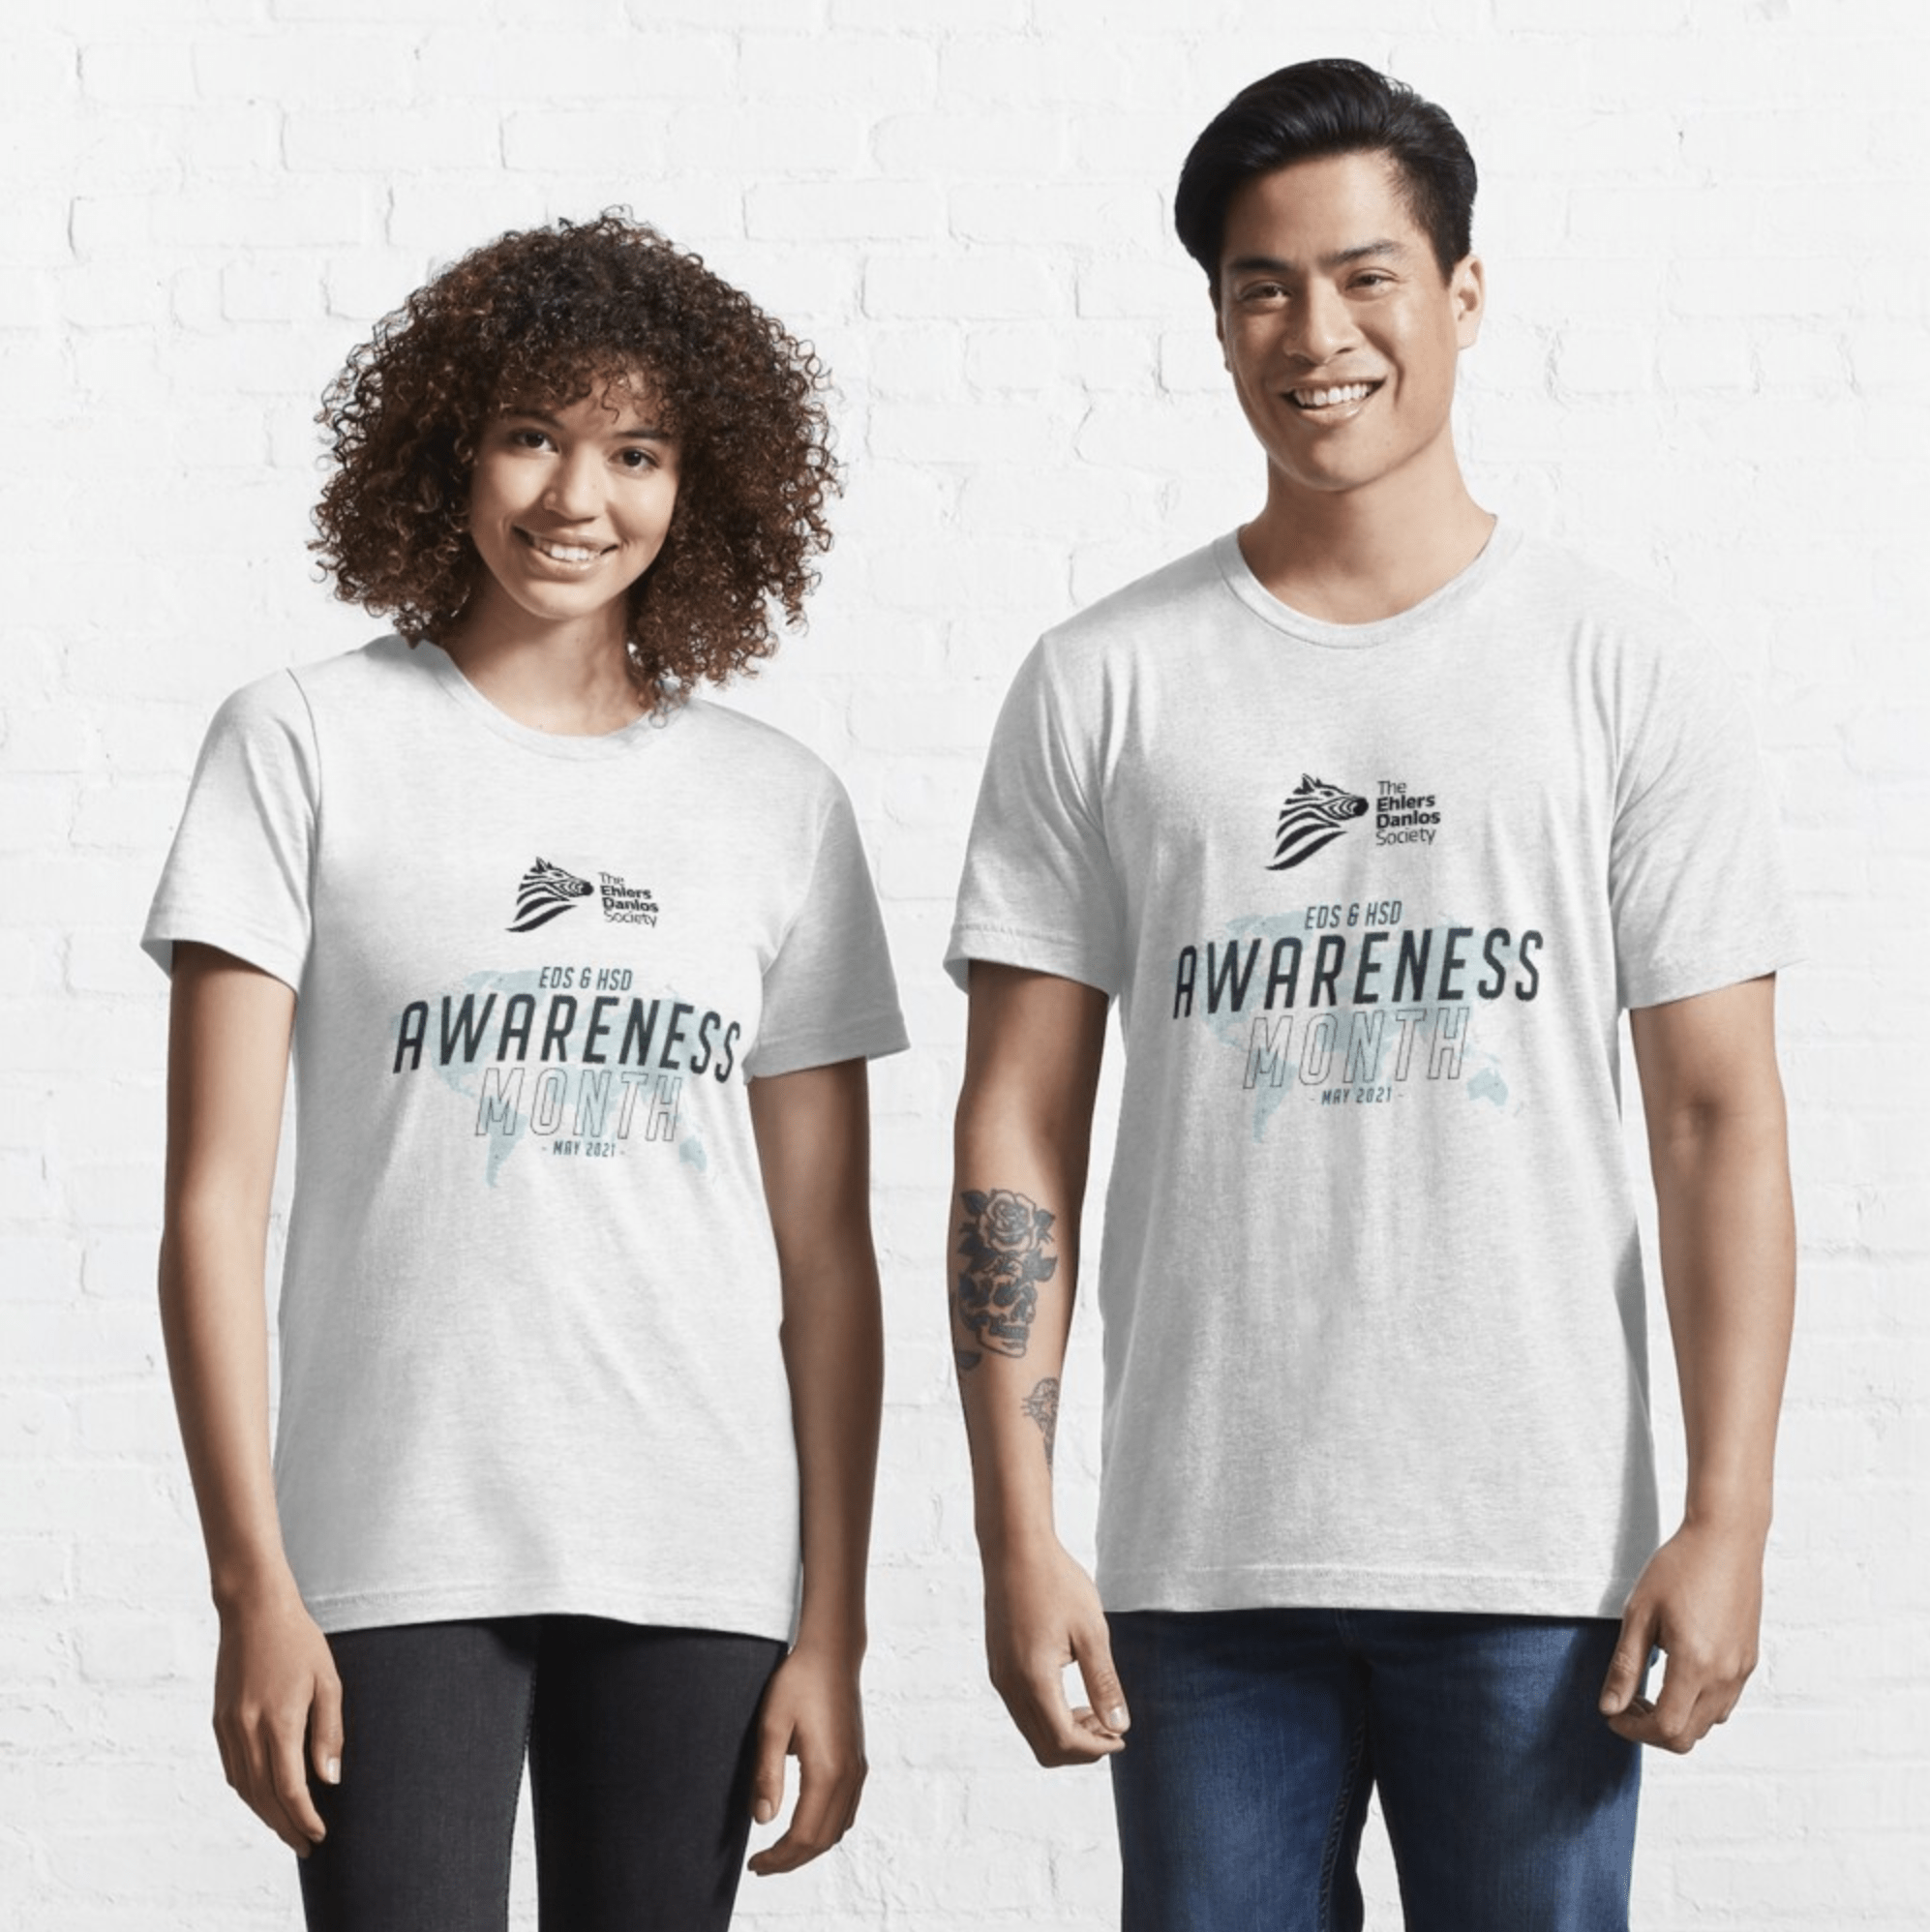 May awareness white tshirt